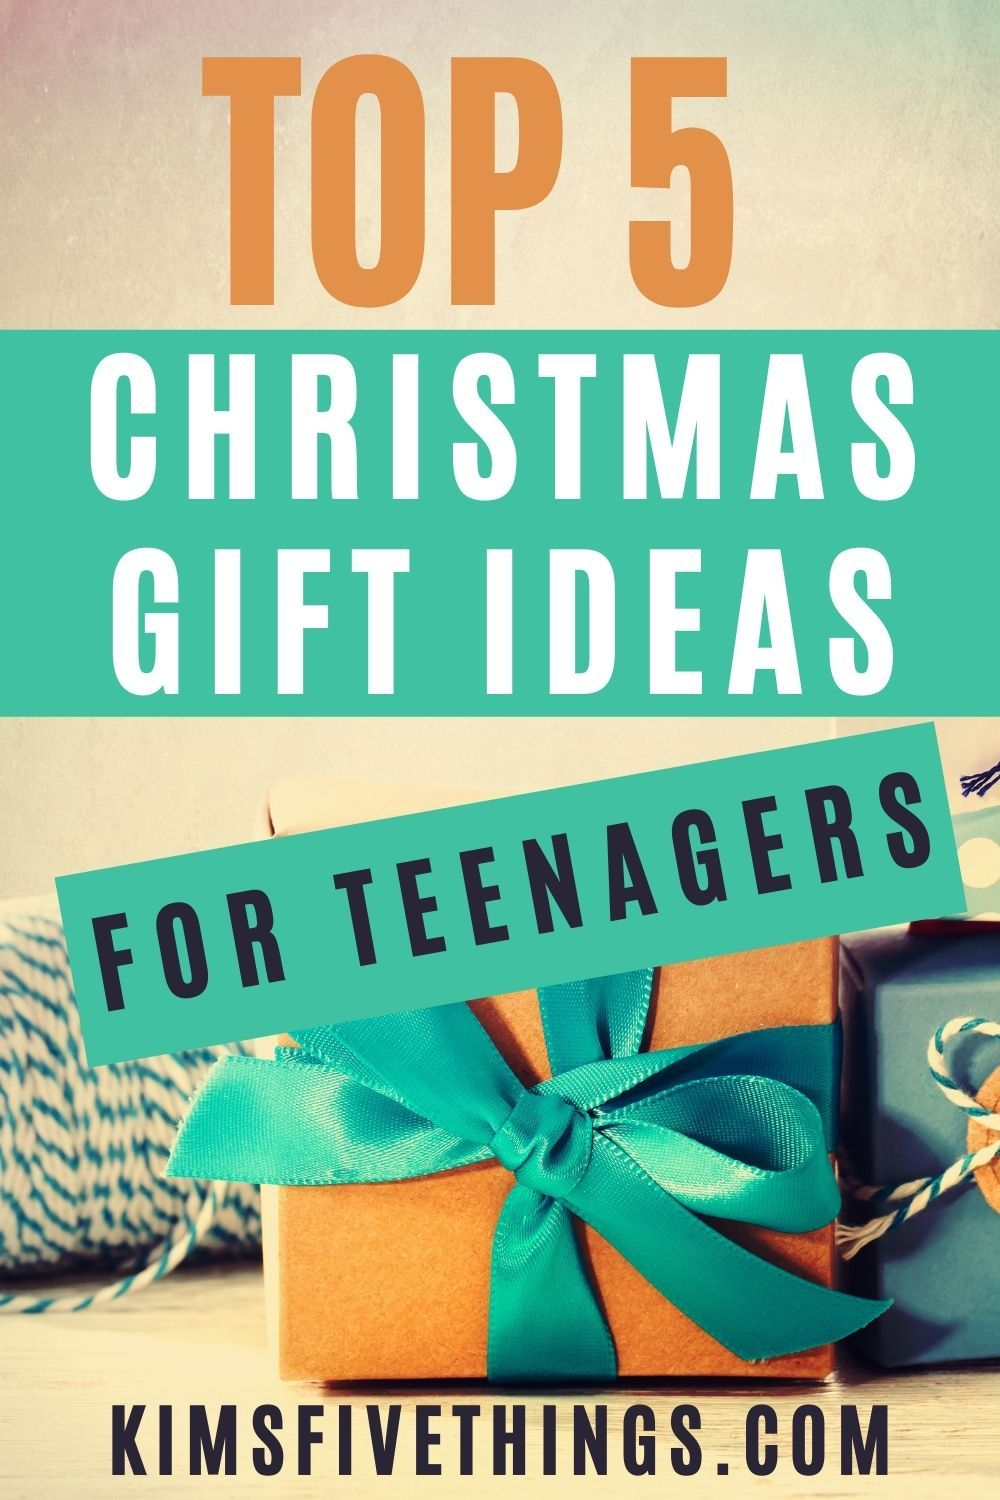 Most Wanted Gifts For Christmas 2020 Top 5 Christmas Gifts for Teens   Most Wanted Gifts 2020 | Kims